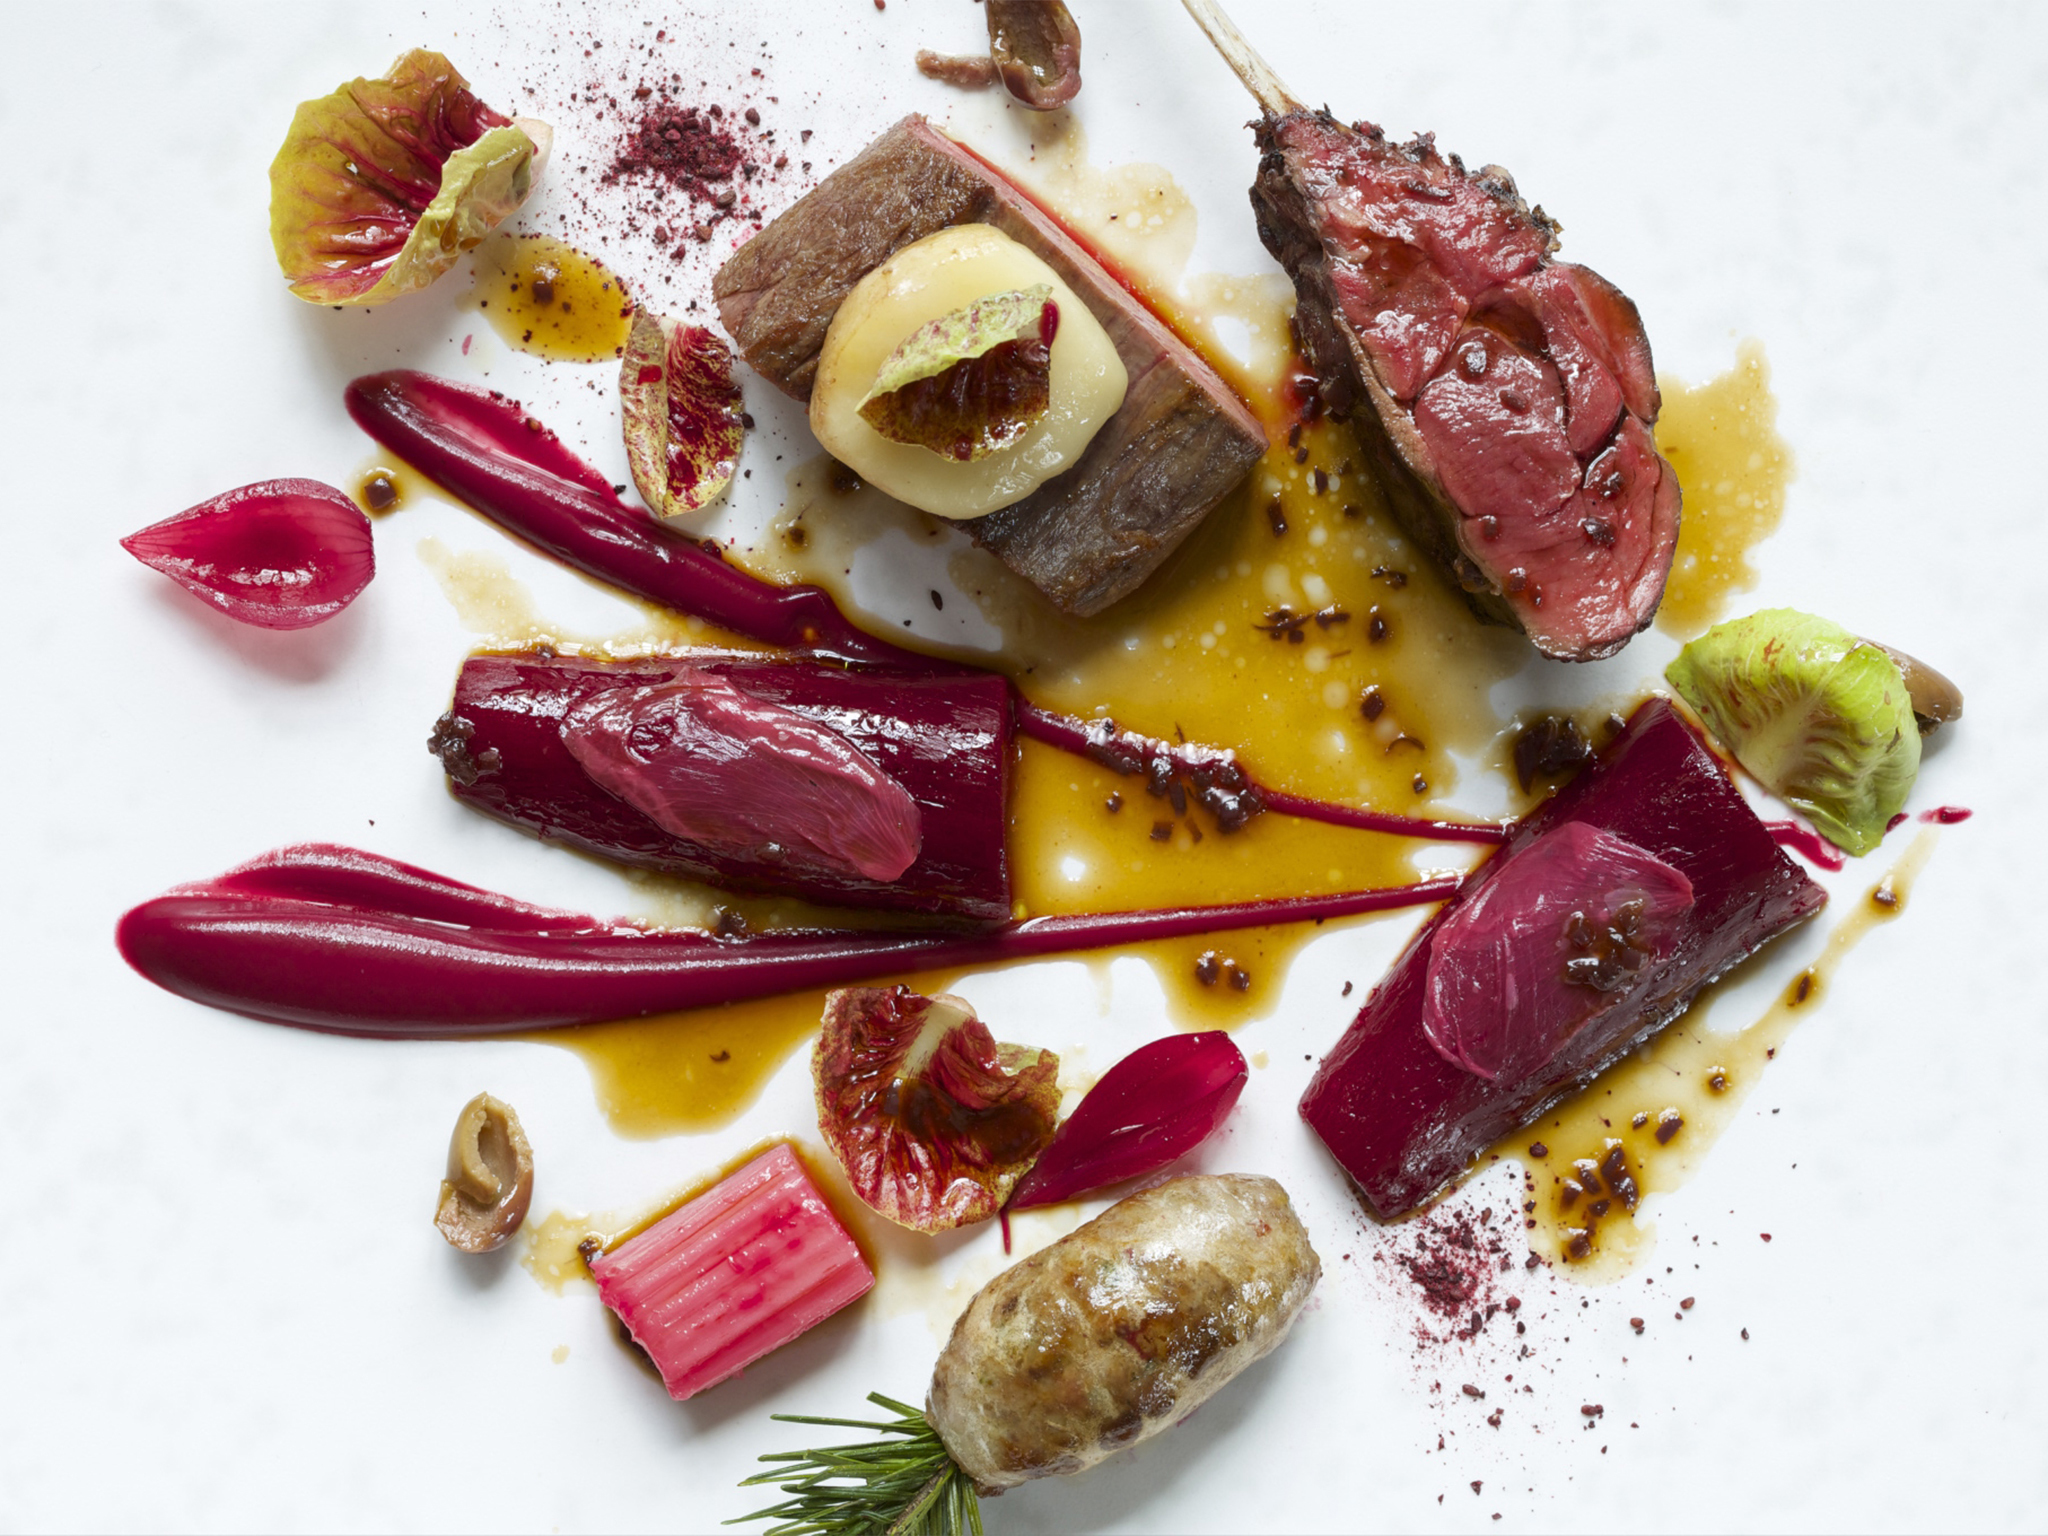 100 best restaurants in London 2015 - The Ledbury